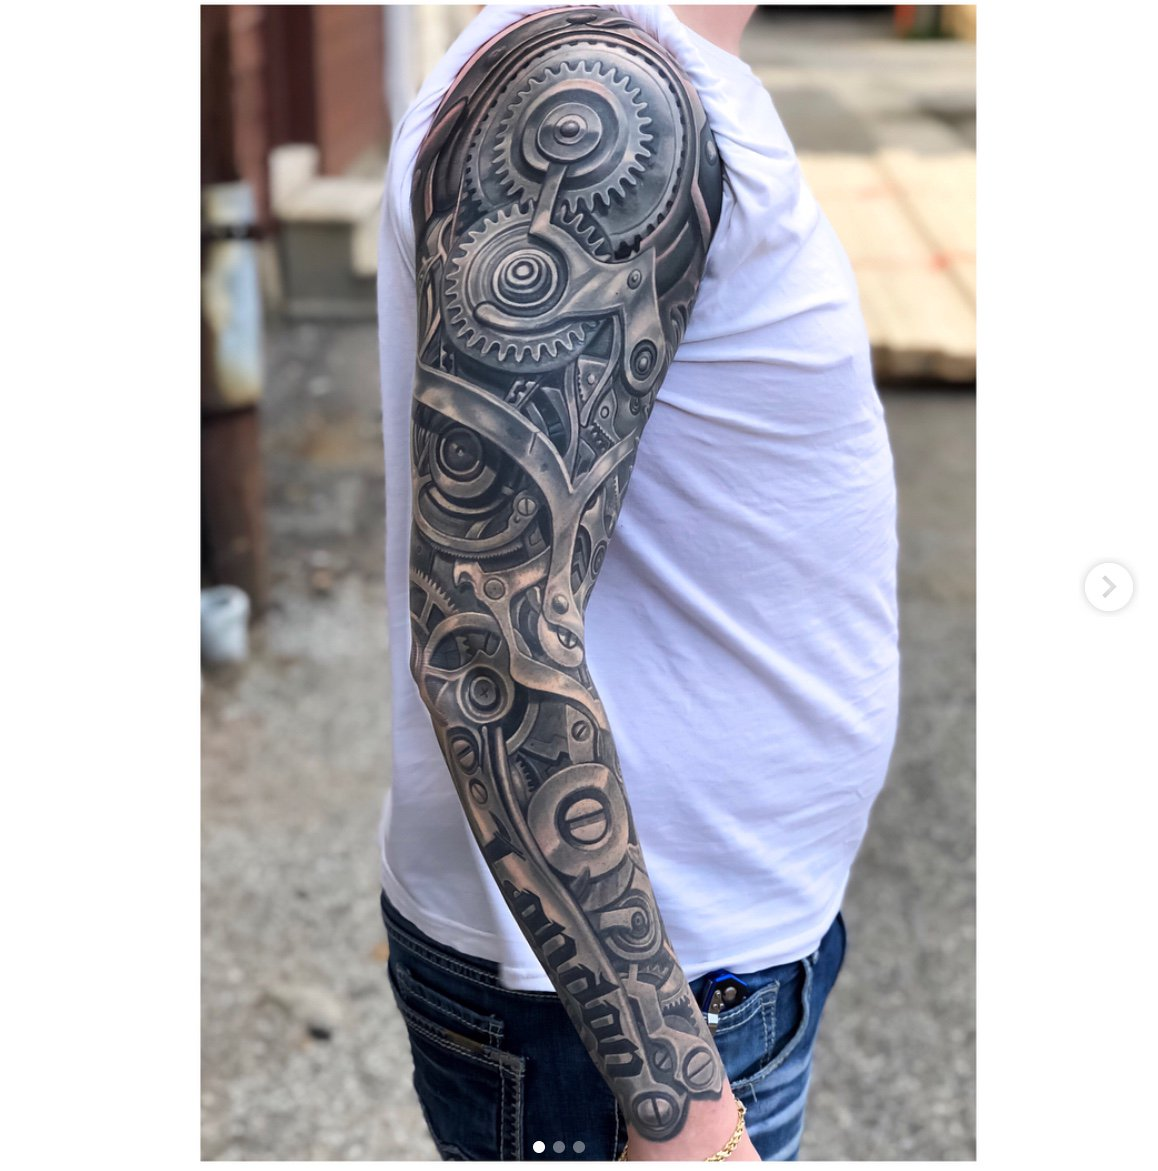 #Tattoo Awesome of the Day: #Steampunk Mechanism with Cogs & Gears Full Sleeve Piece by @TimothyBoor via @PainfulPleasure #SamaTattoo